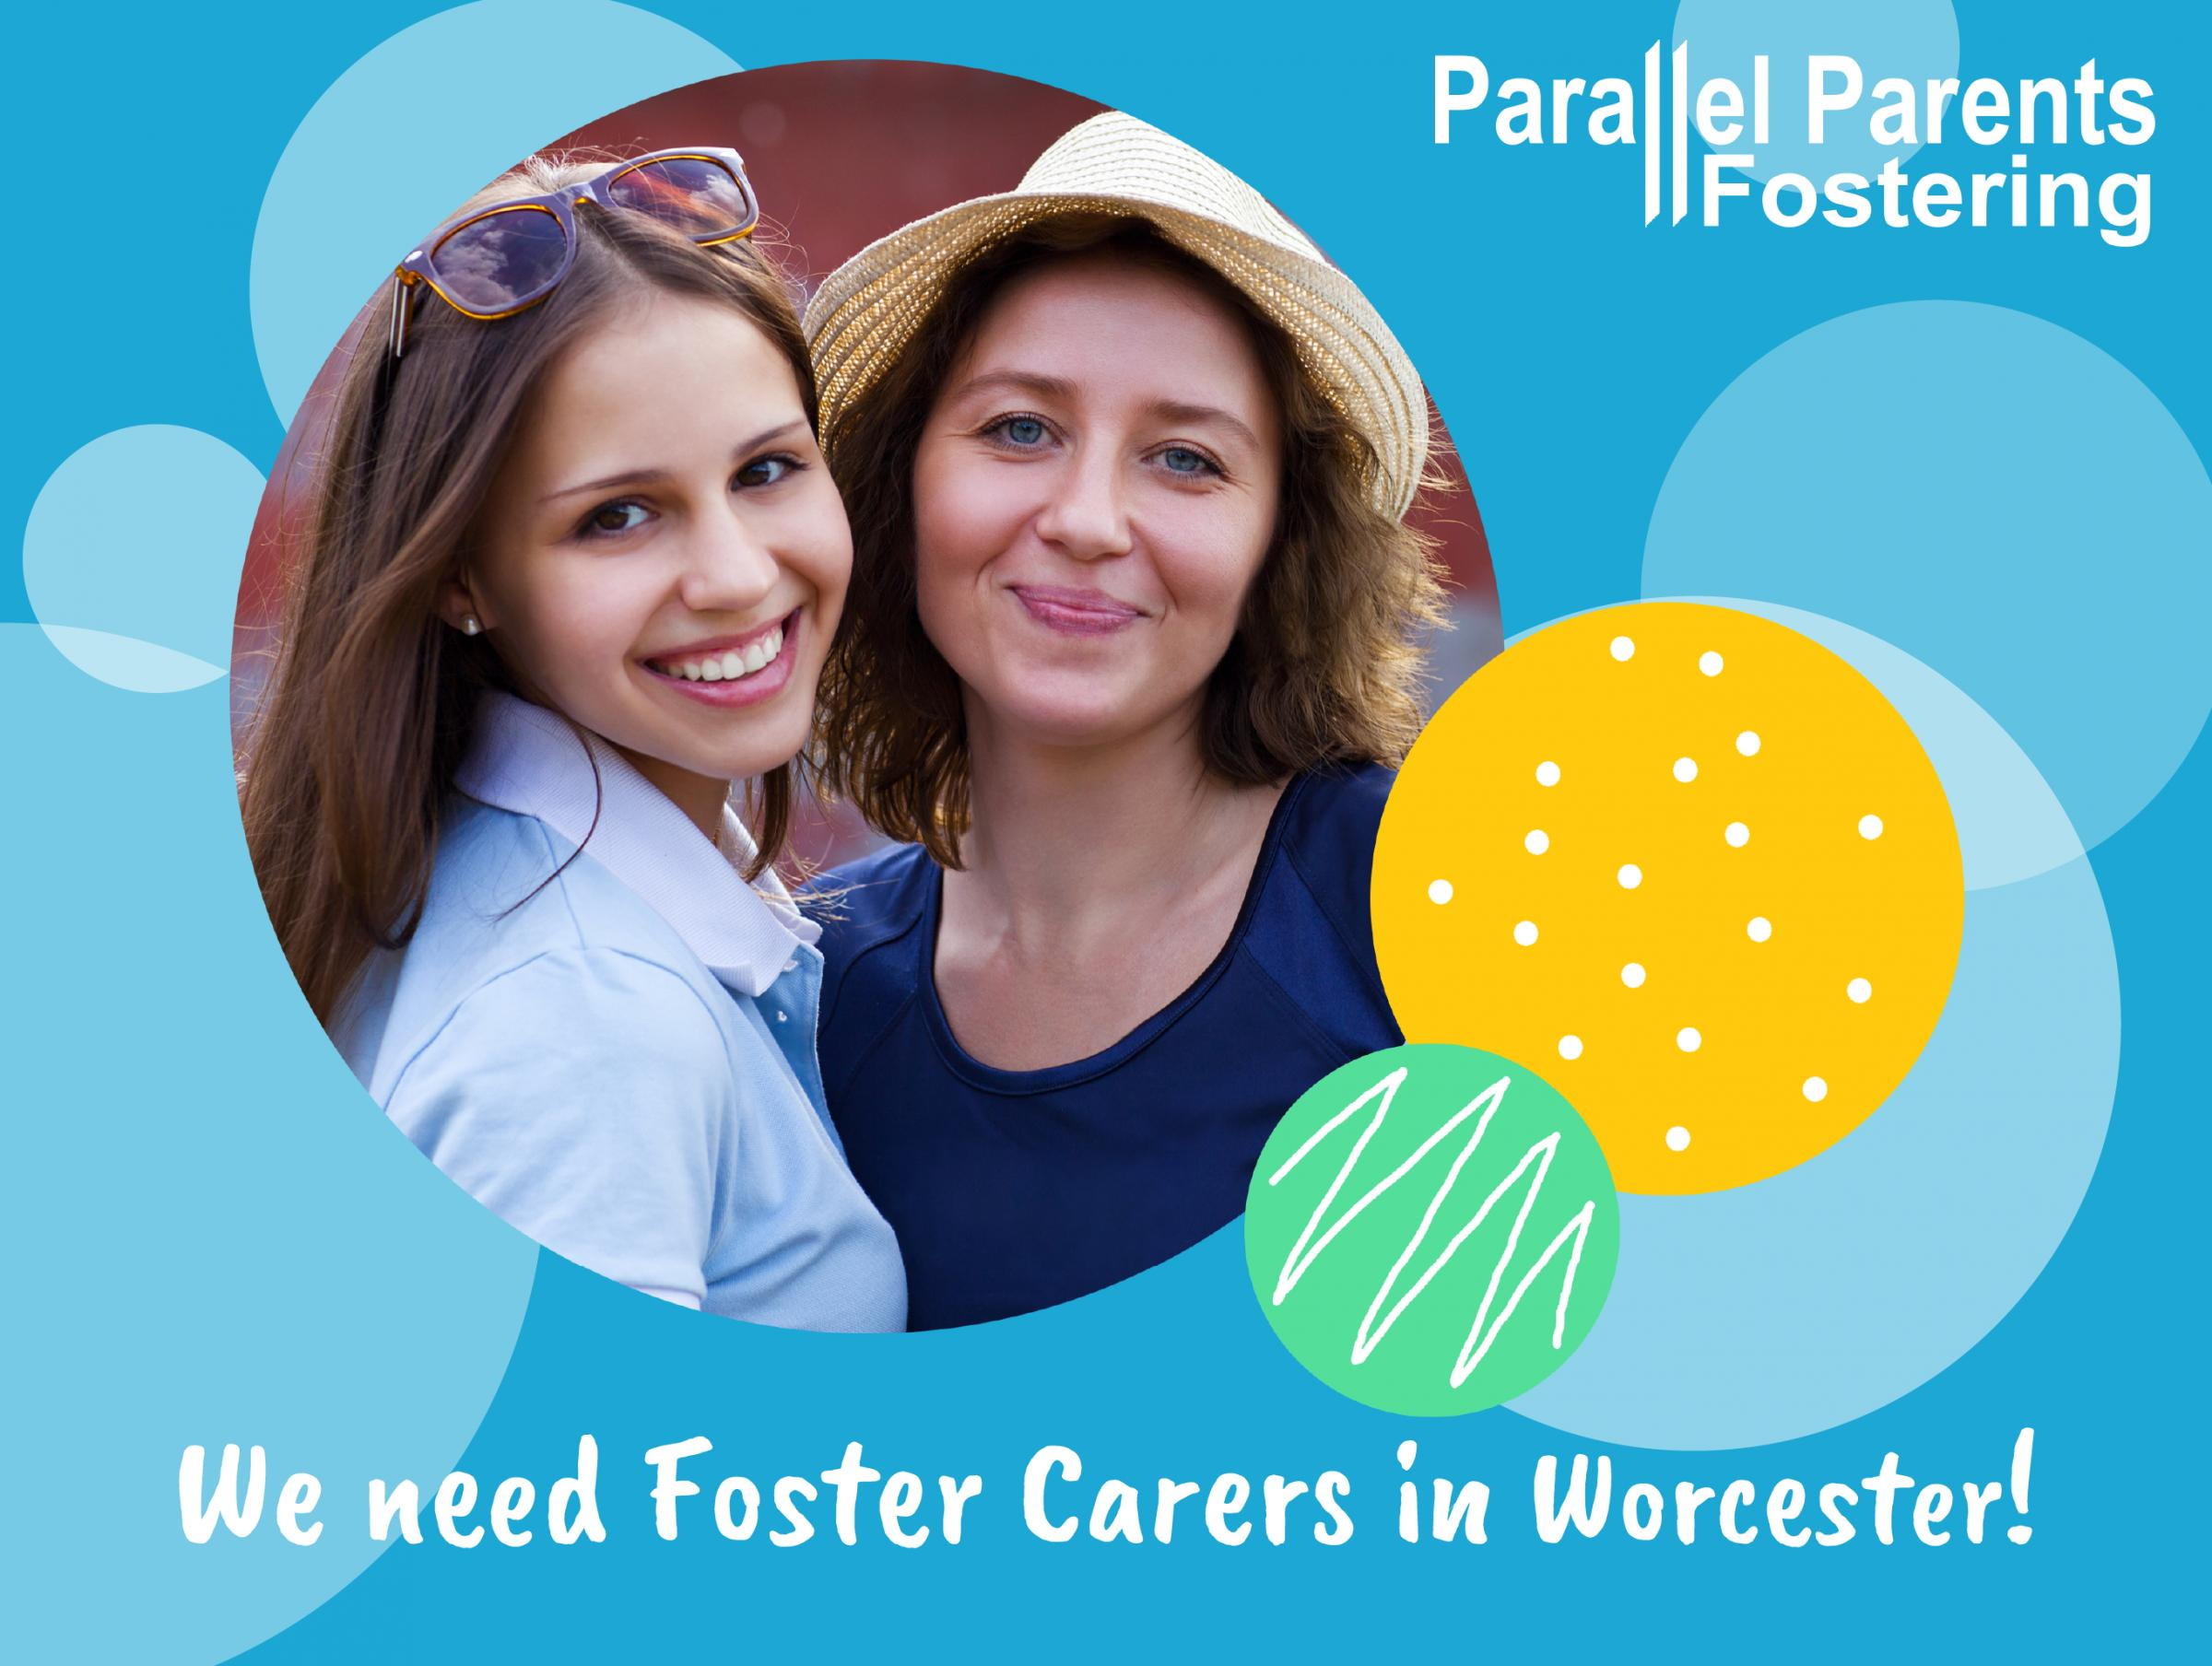 Parallel Parents Fostering Service will be Joining Macmillan Coffee Morning at Lyppard Hub Worcester